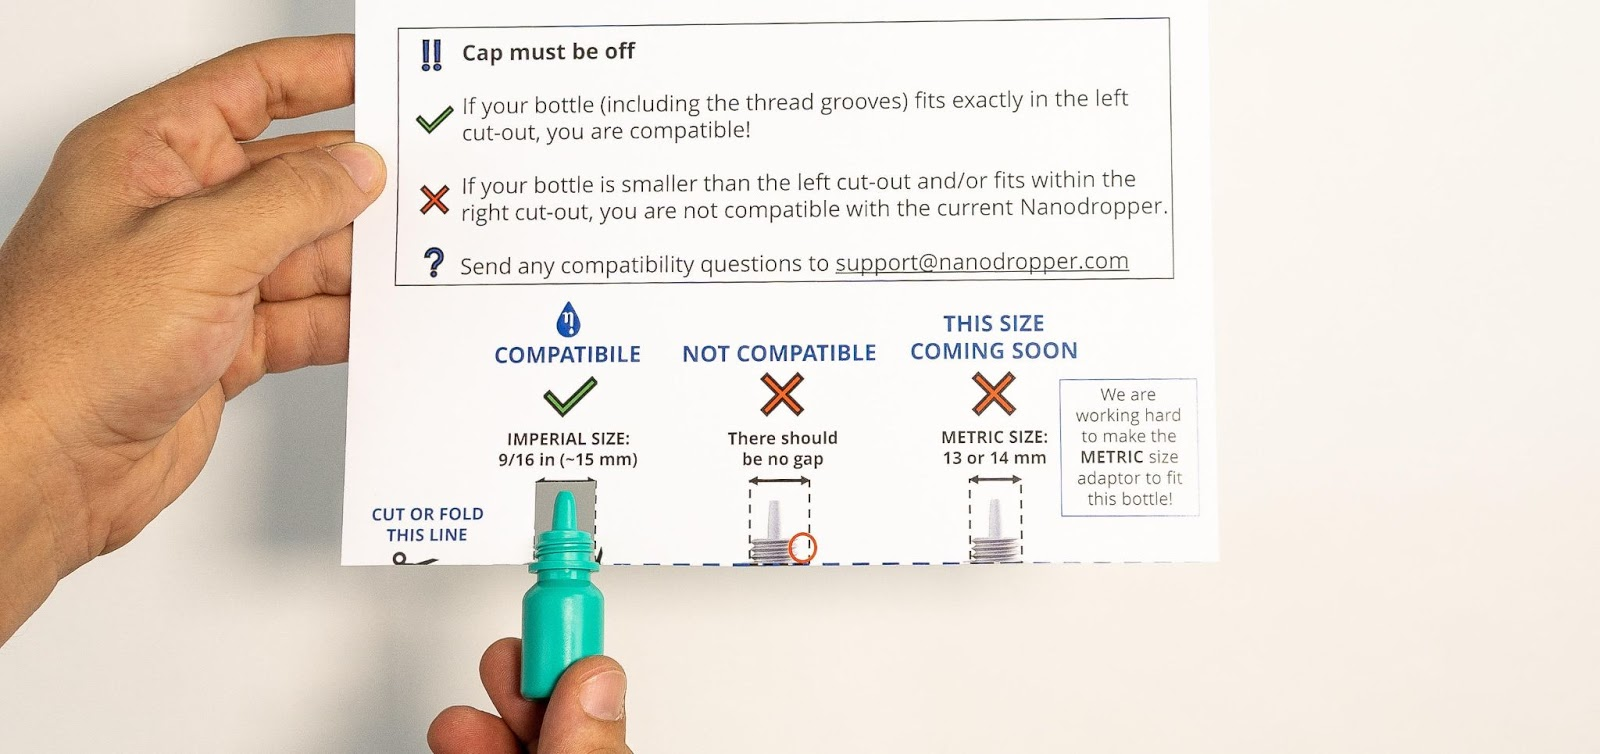 The Nanodropper comparison card that shows patients whether the Nanodropper fits their bottle